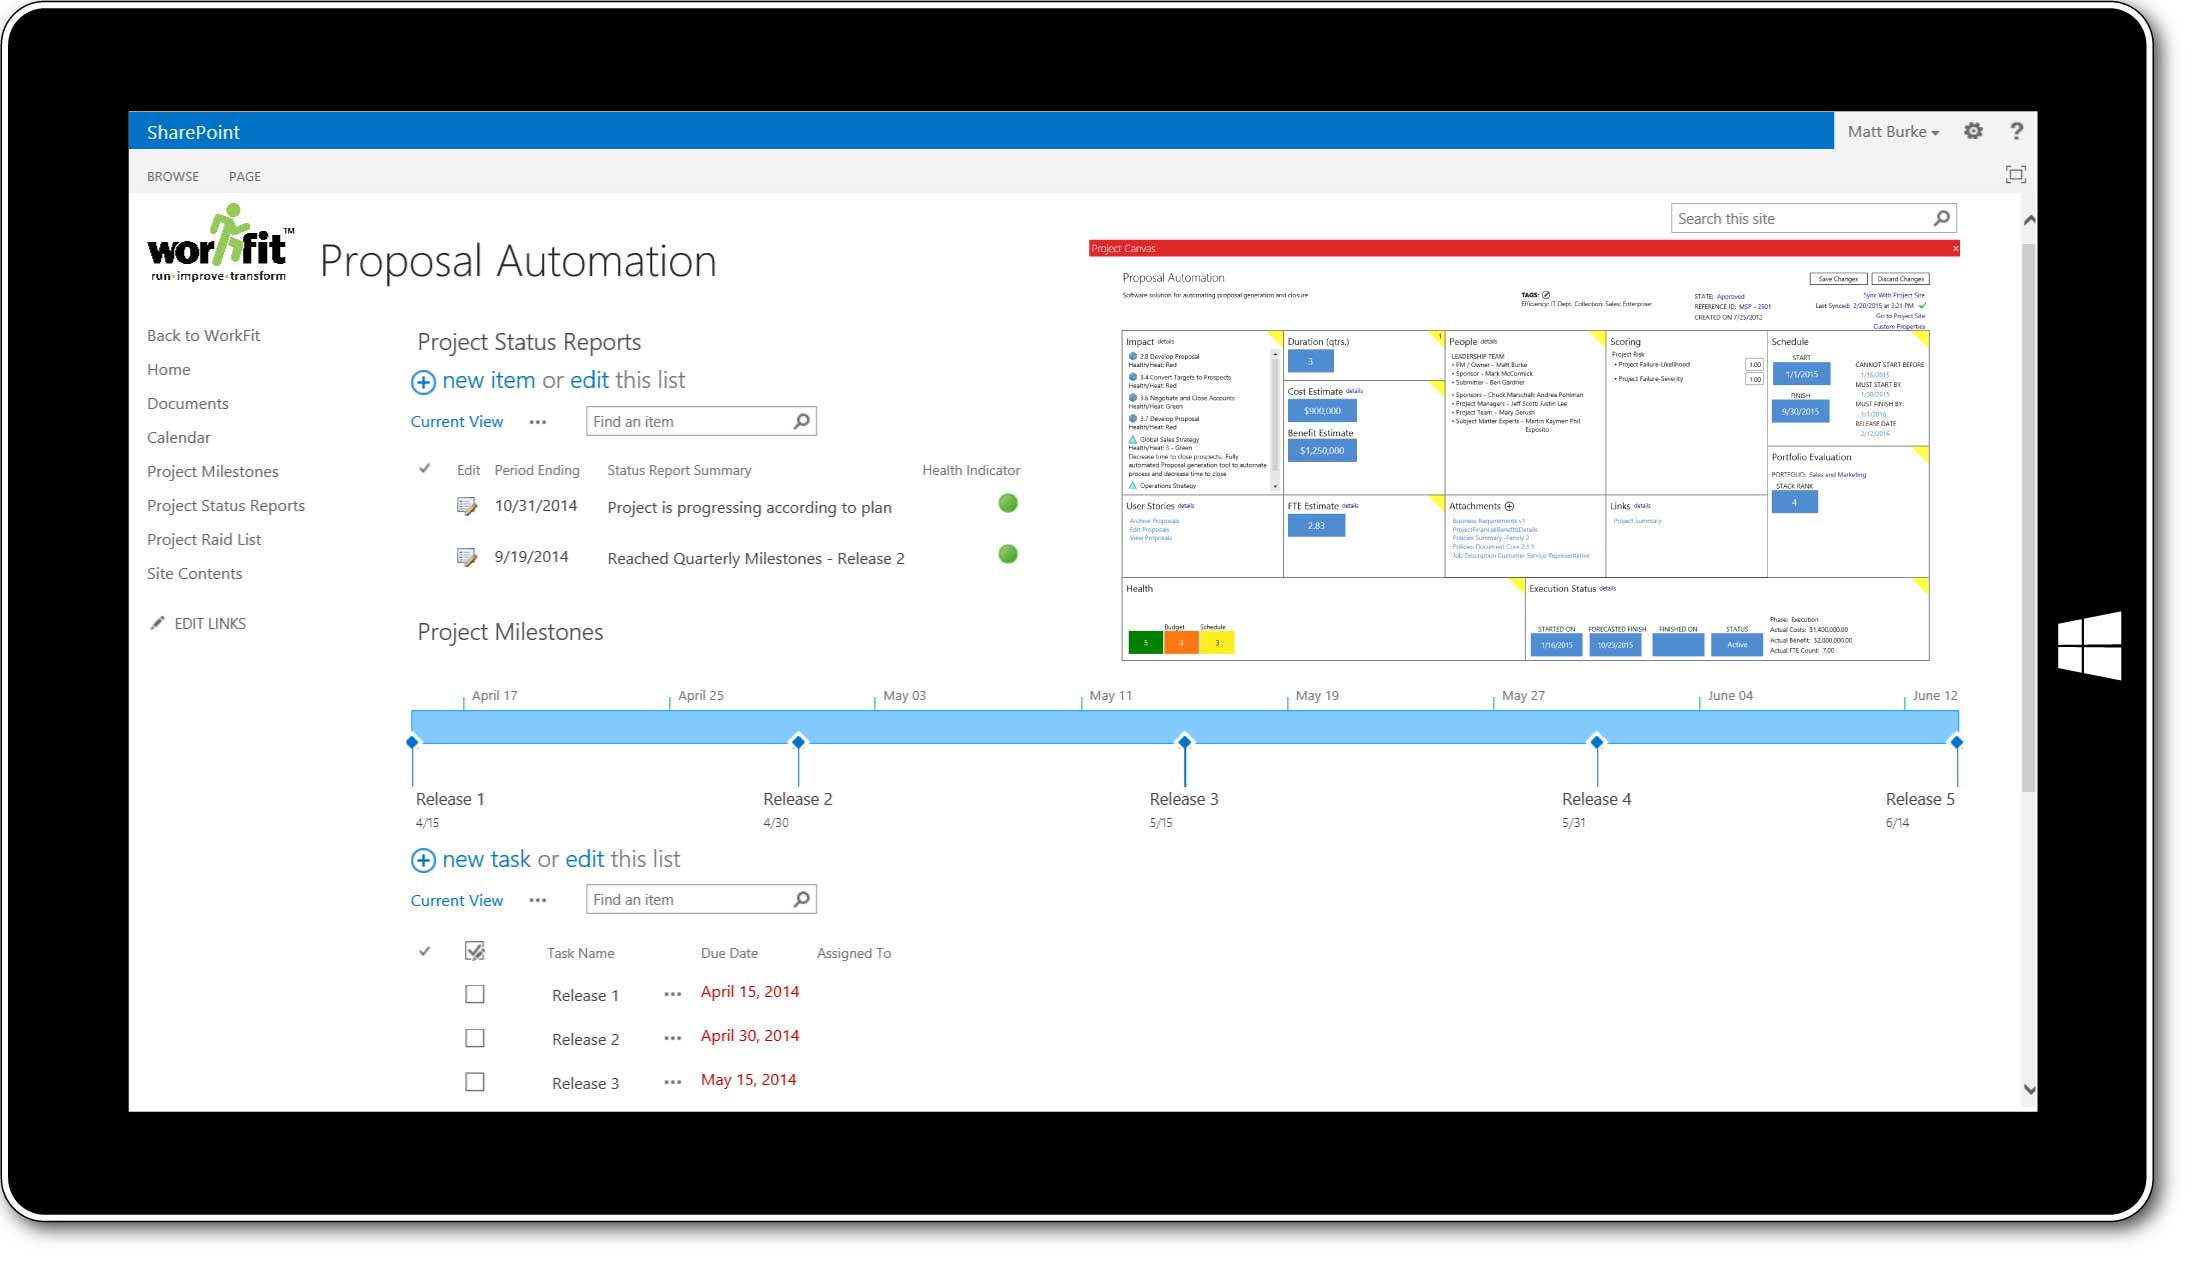 WorkFit for business plan and project scorecards screenshot, of project canvas, proposal automation.